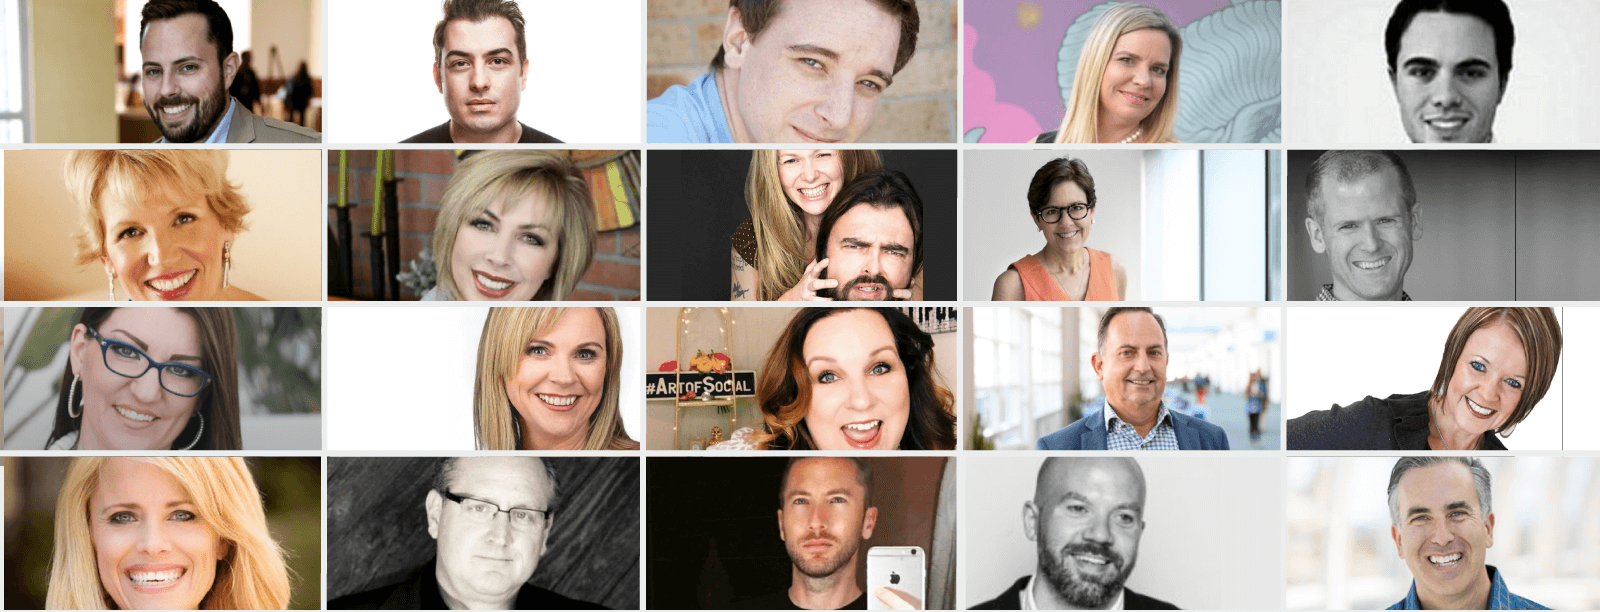 Top Social Media Influencers to Follow in 2019